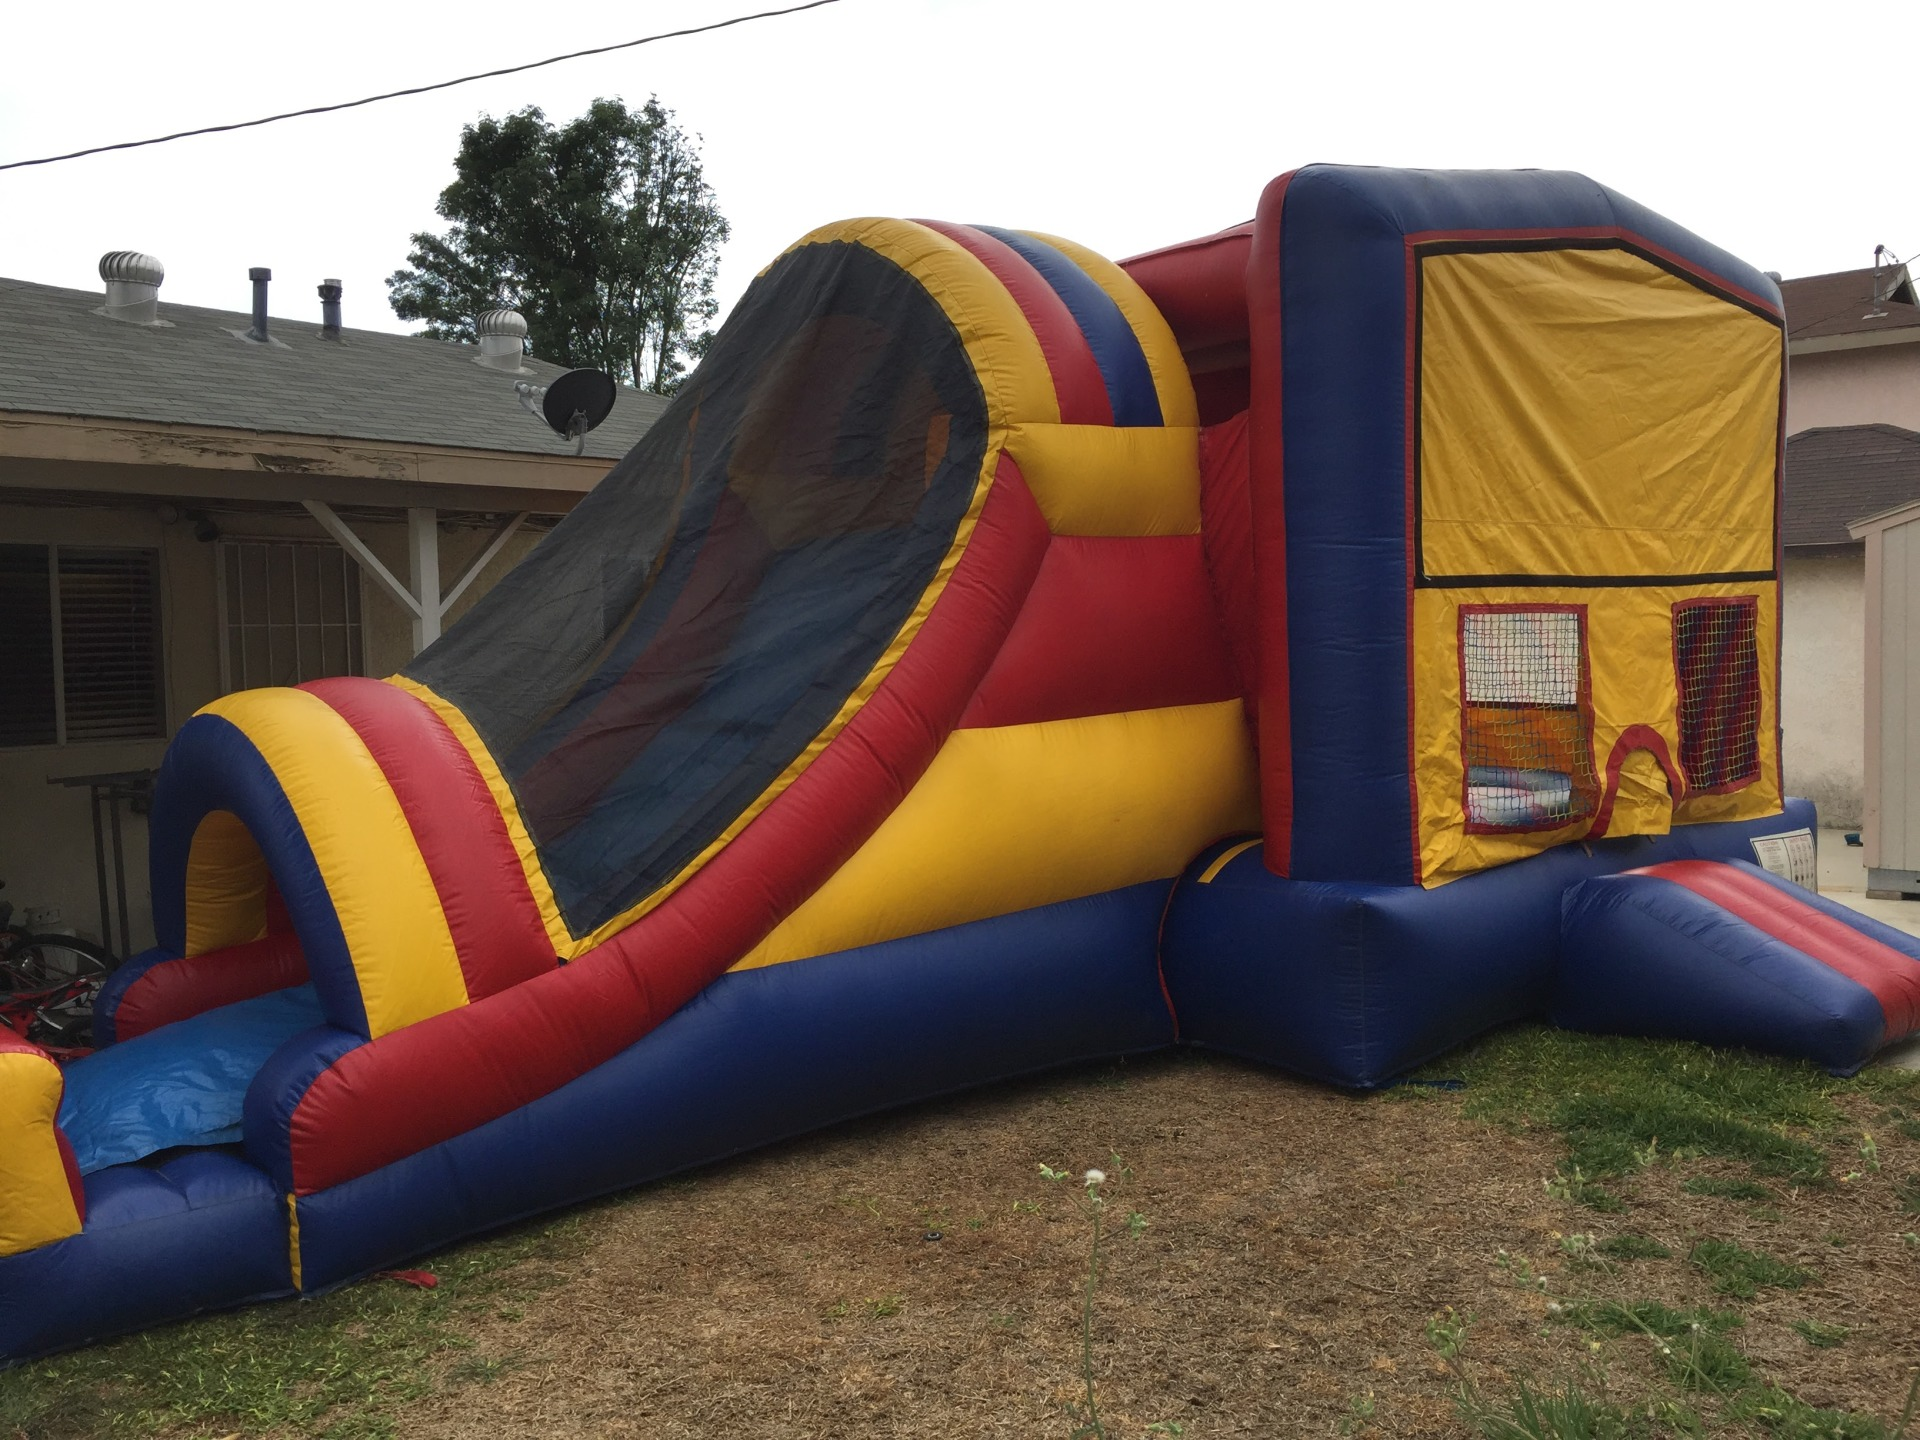 BASKETYBALL HOOP, JUMPING AREA, 4 IN 1 COMBO JUMPER, 5 IN 1 COMBO JUMPER FOR RENT, JUMPER WITH SLIDE FOR RENT, COMBO JUMPERS AROUND MY AREA